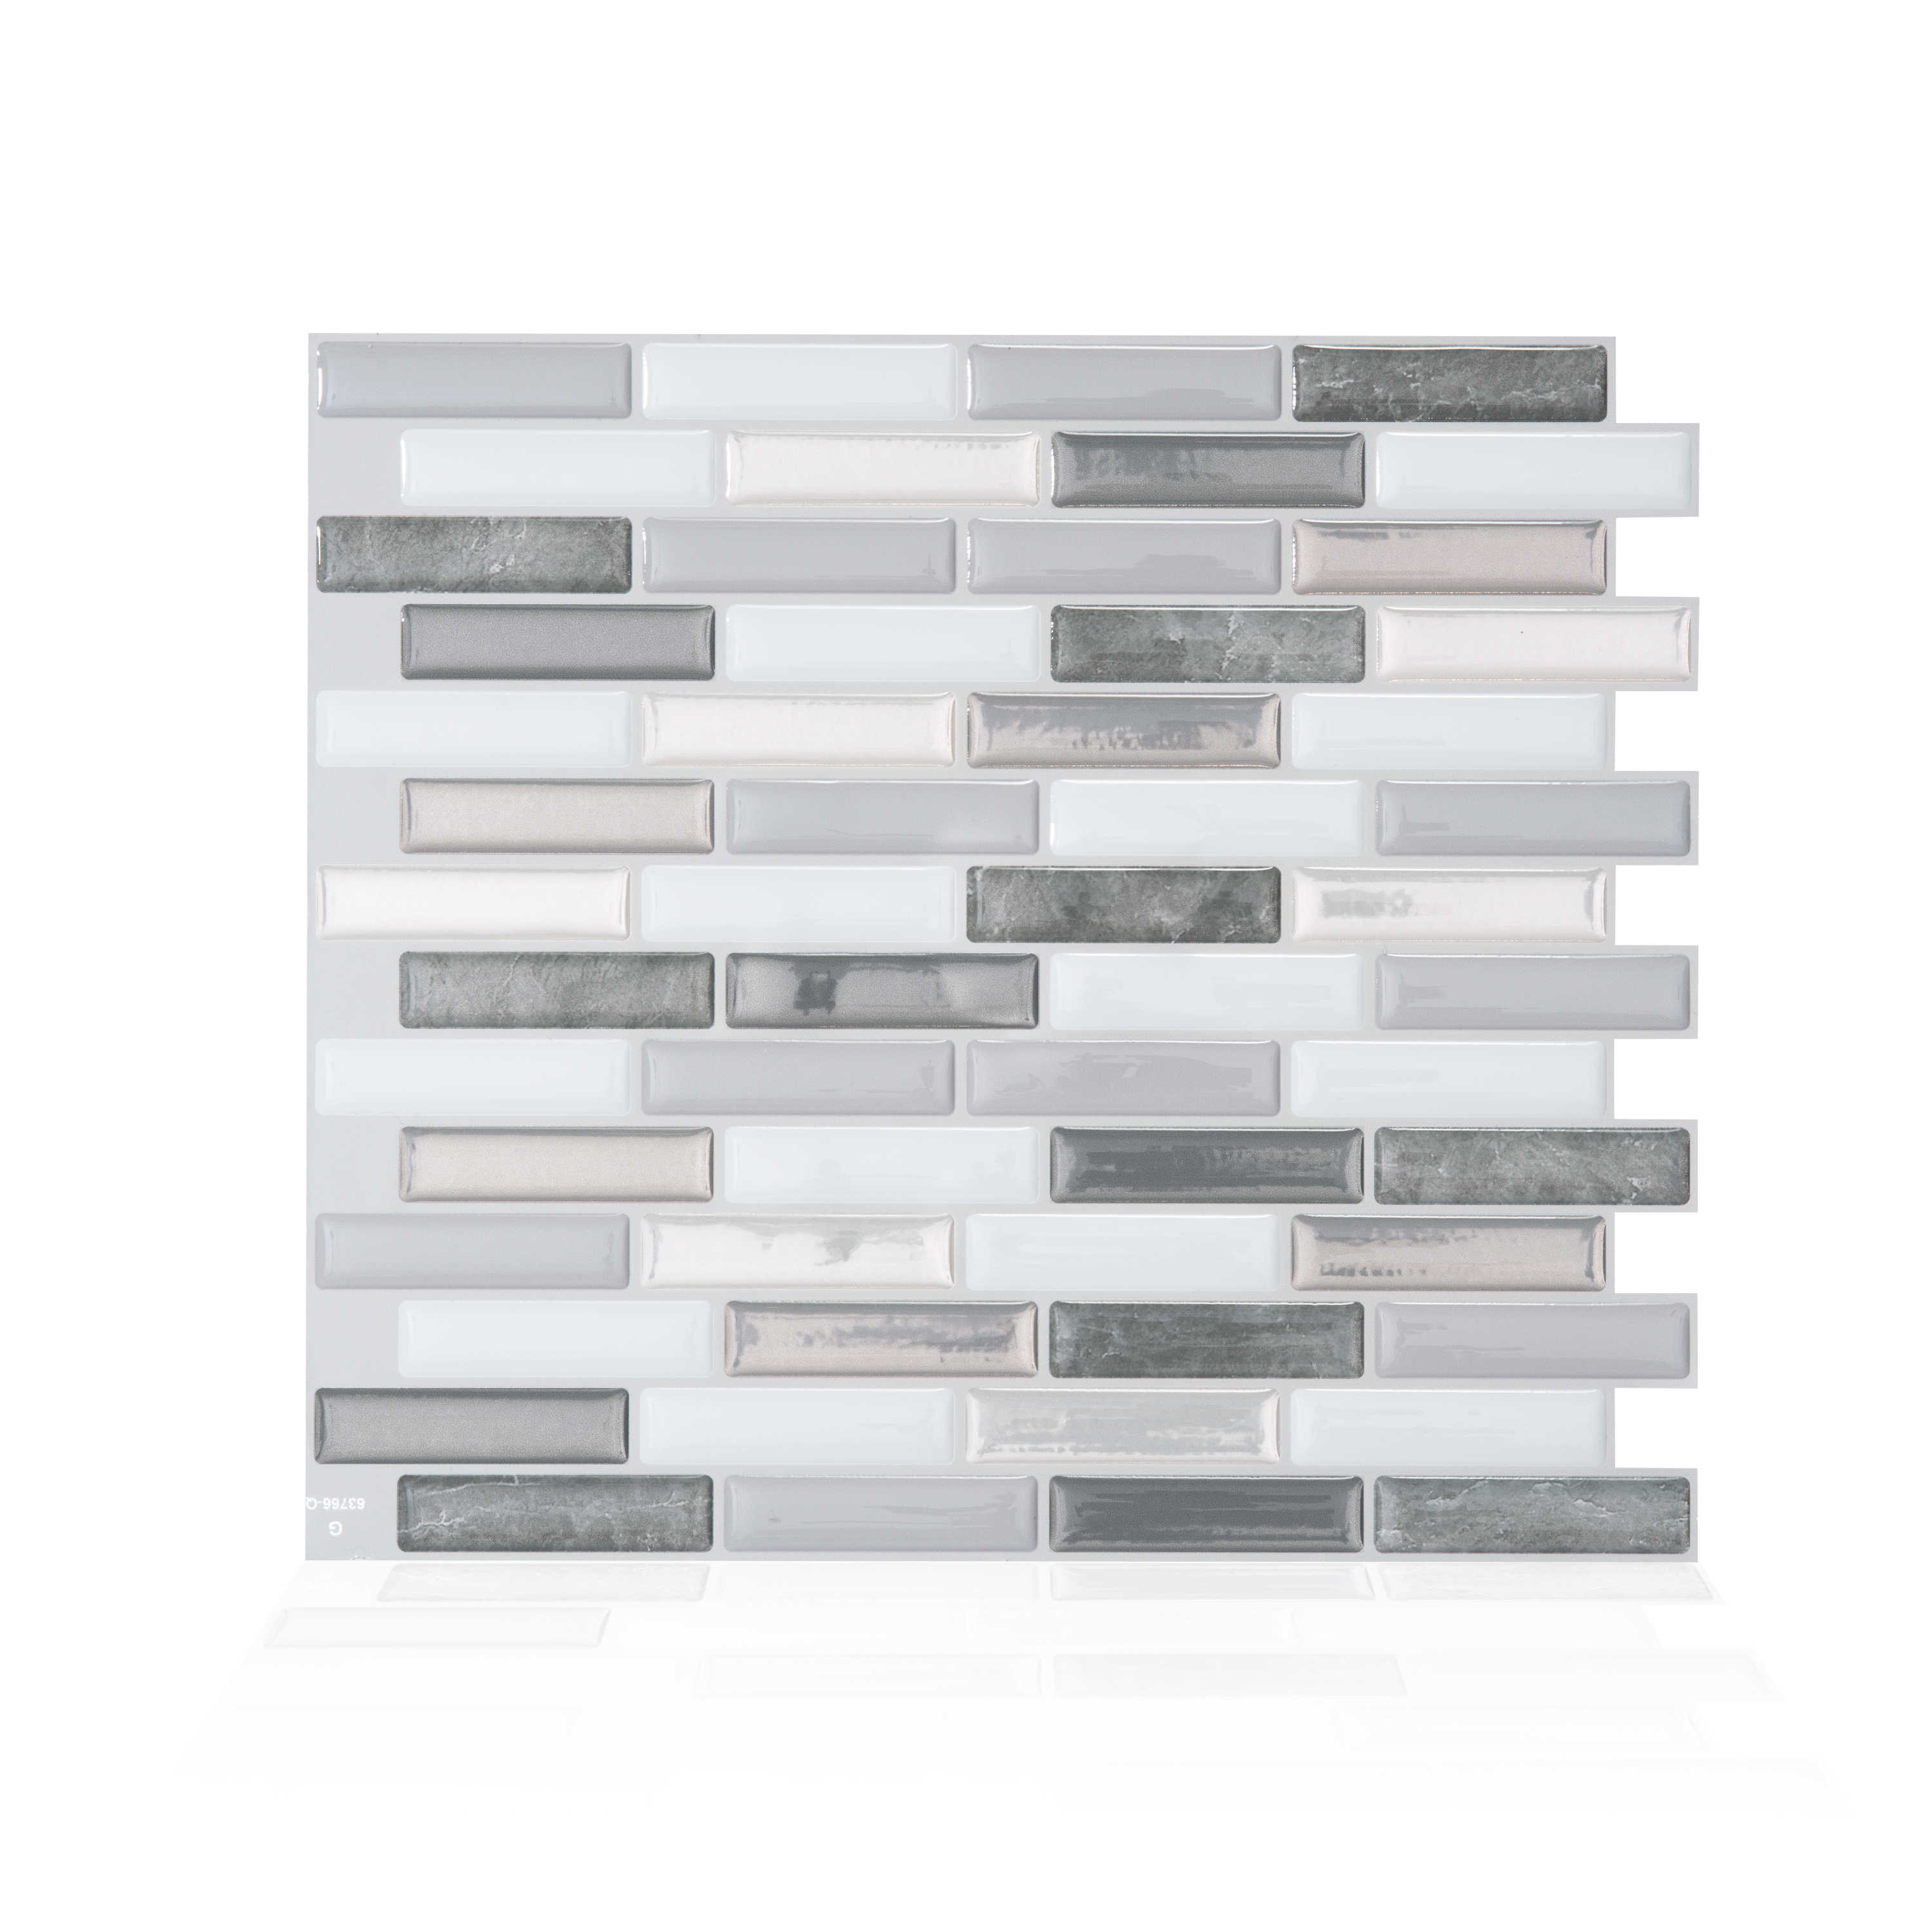 Smart Tiles 10.20 in x 9 in Peel and Stick Self-Adhesive Mosaic Backsplash Wall Tile - Milenza Bigio (each)